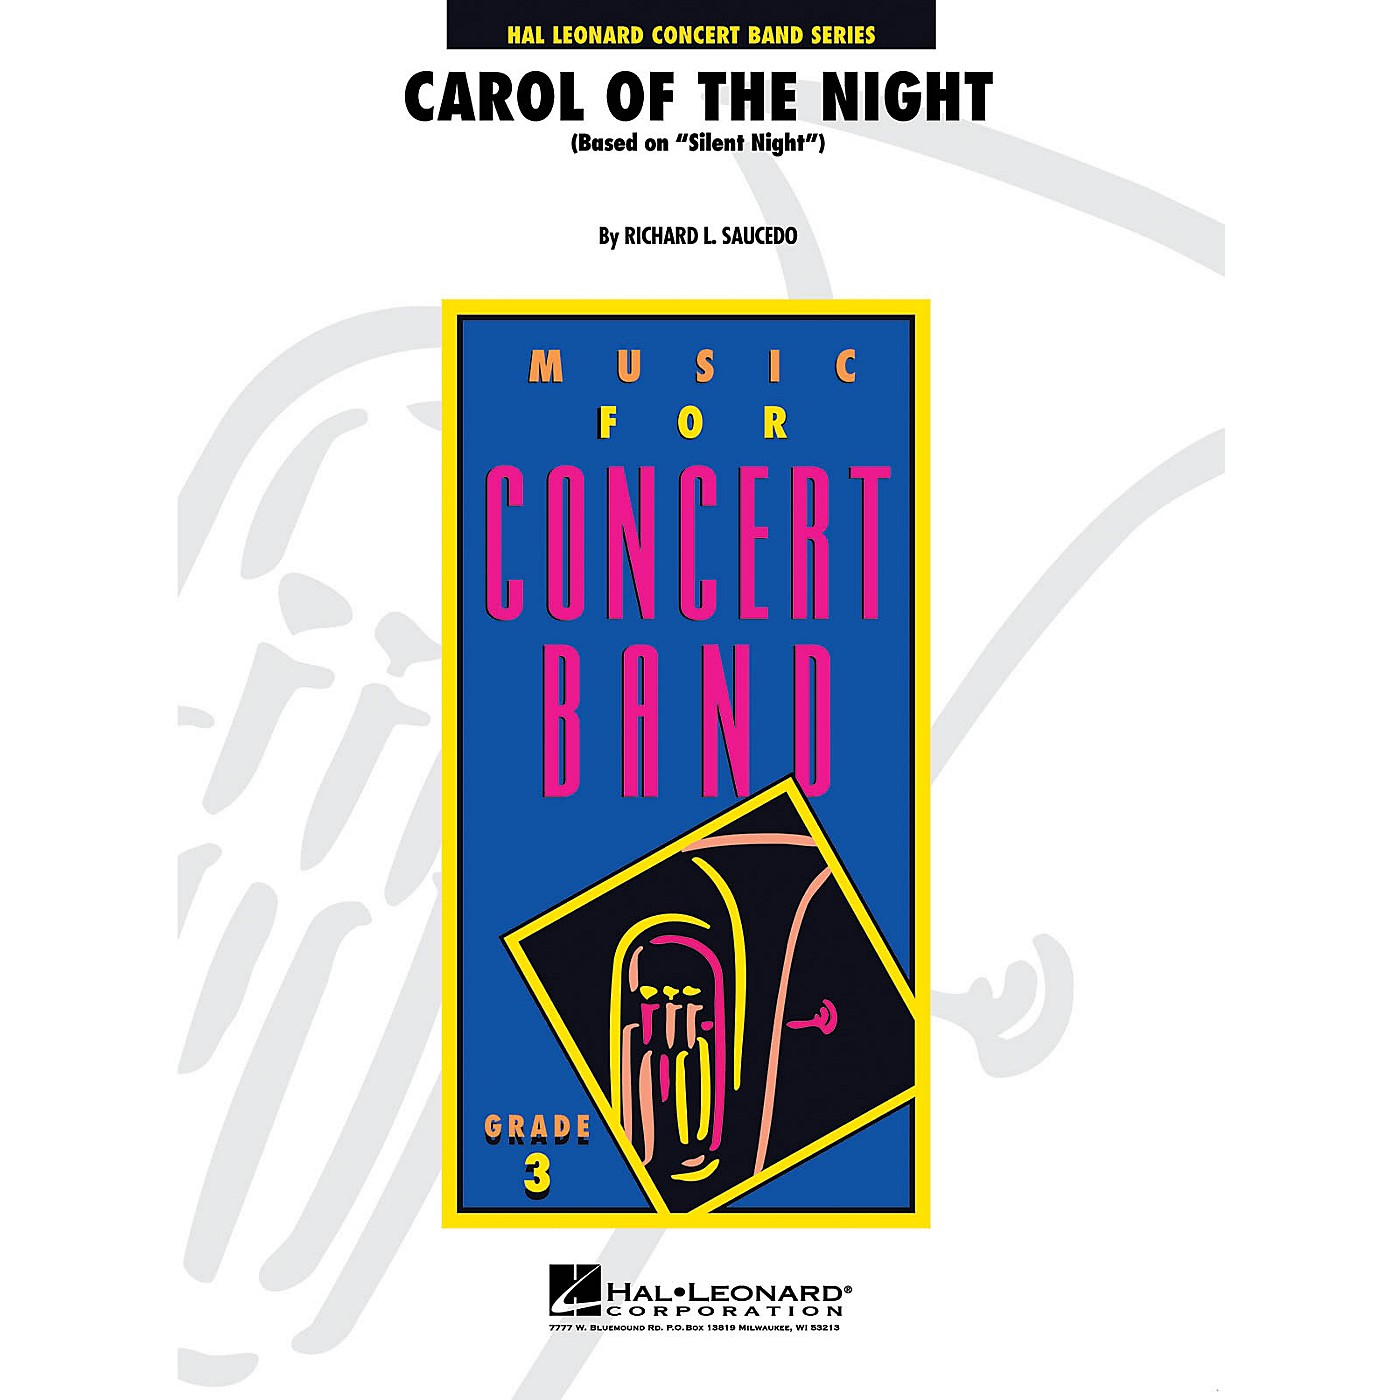 Hal Leonard Carol of the Night - Young Concert Band Series Level 3 arranged by Richard L. Saucedo thumbnail